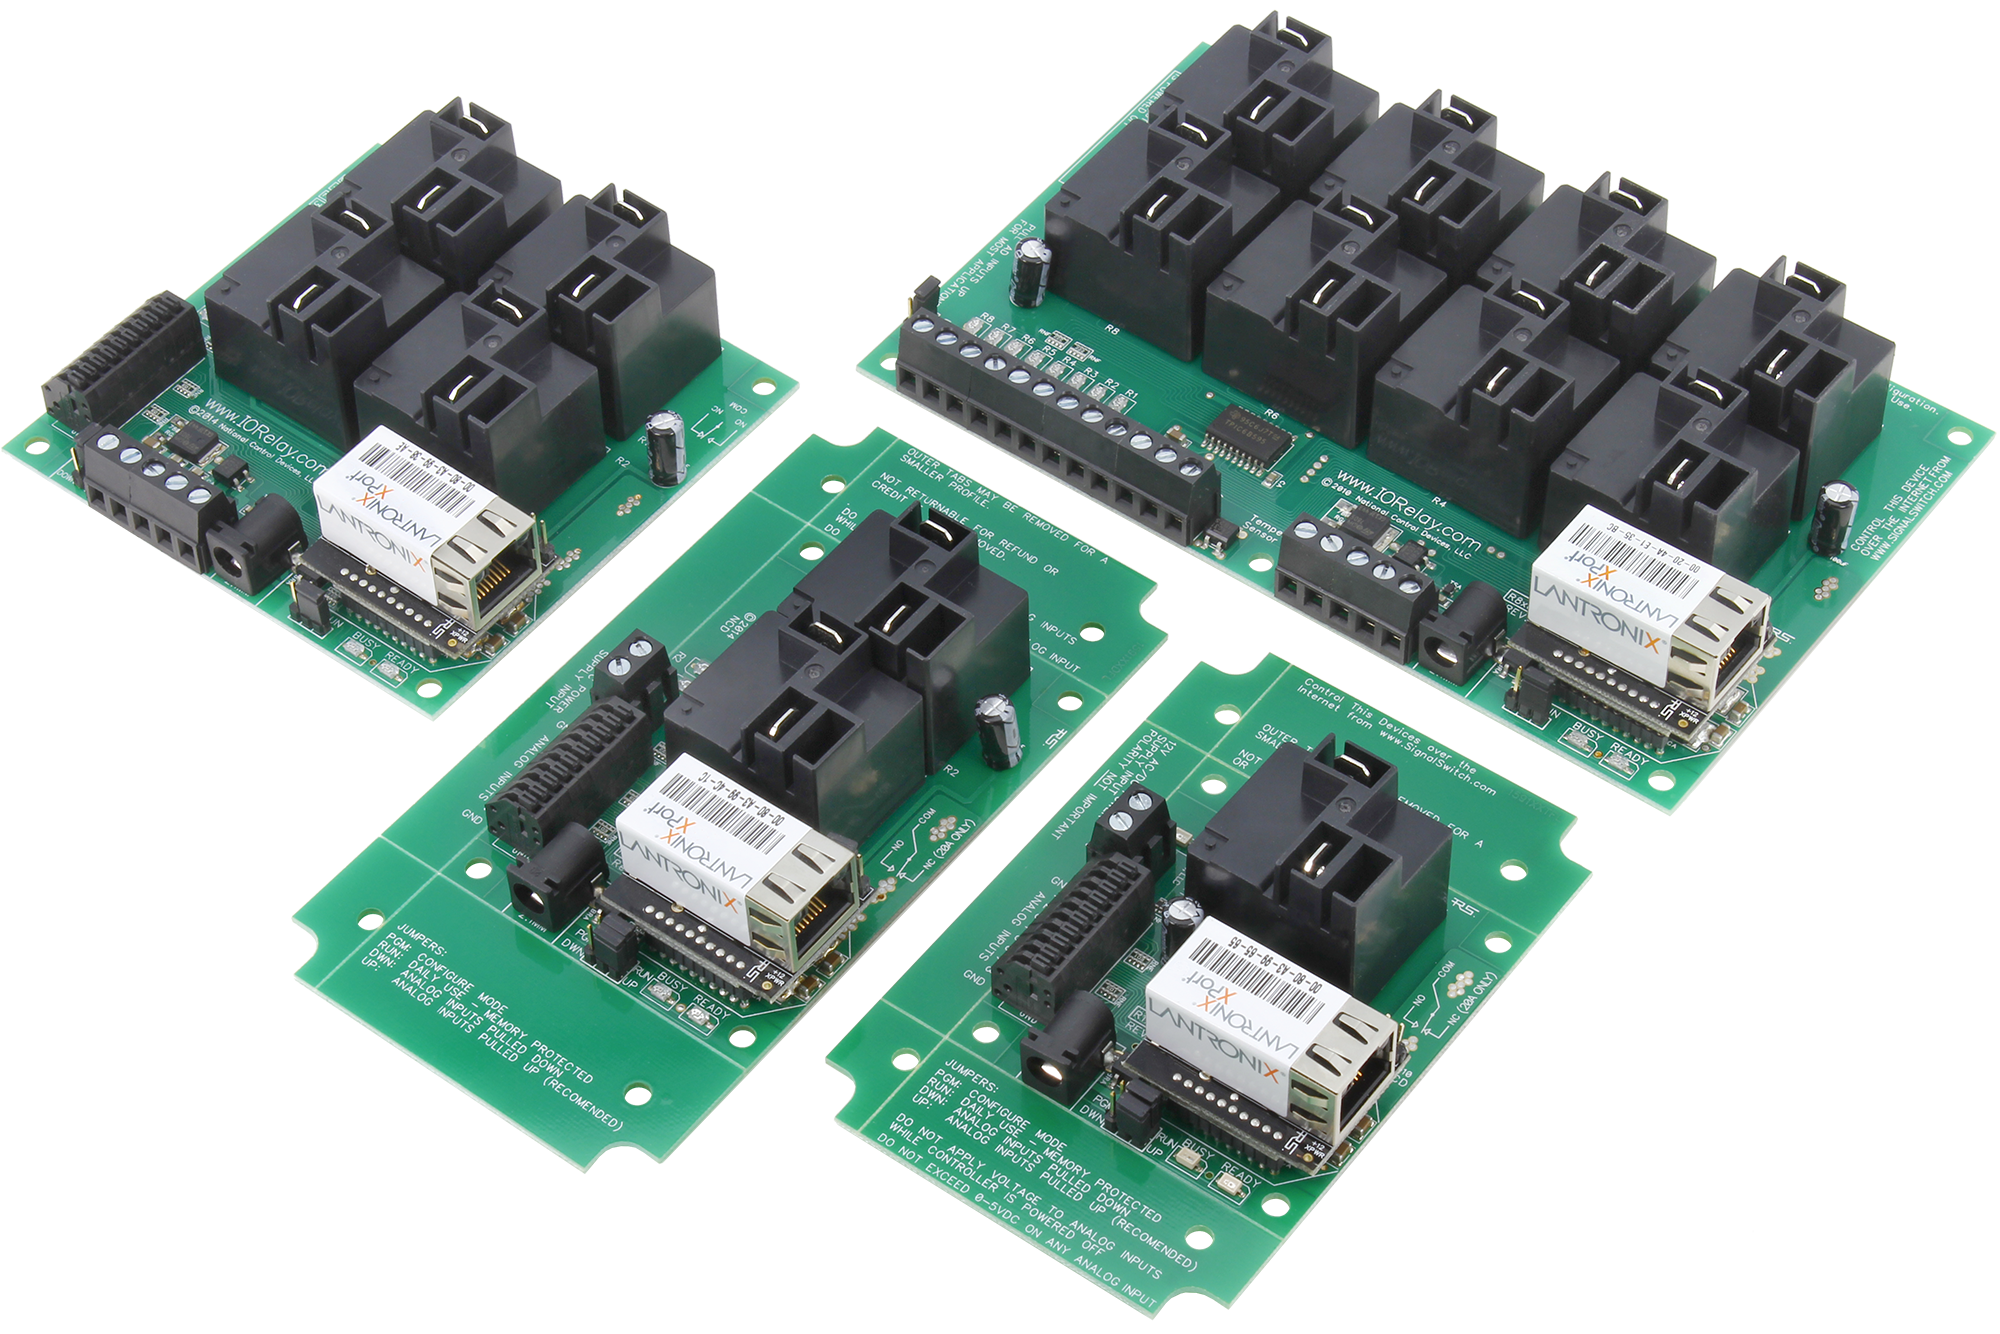 ethernet relay controller for windows, linux, mac, and any